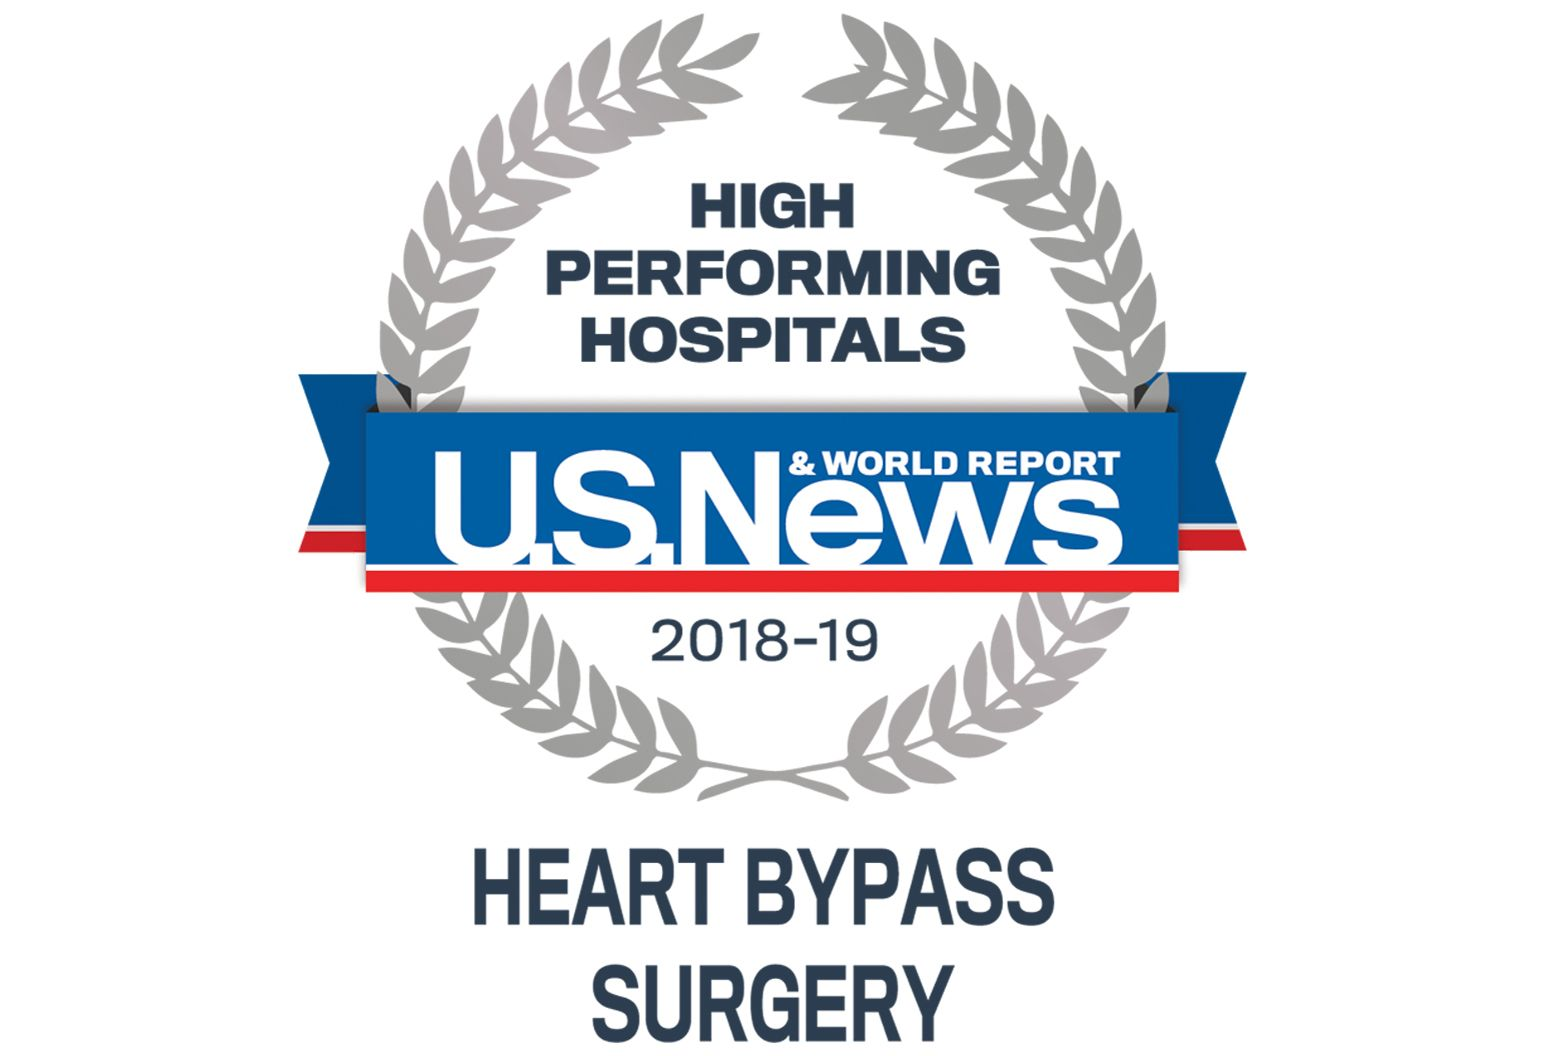 US News & World Report badges indicating high performing in heart bypass surgery